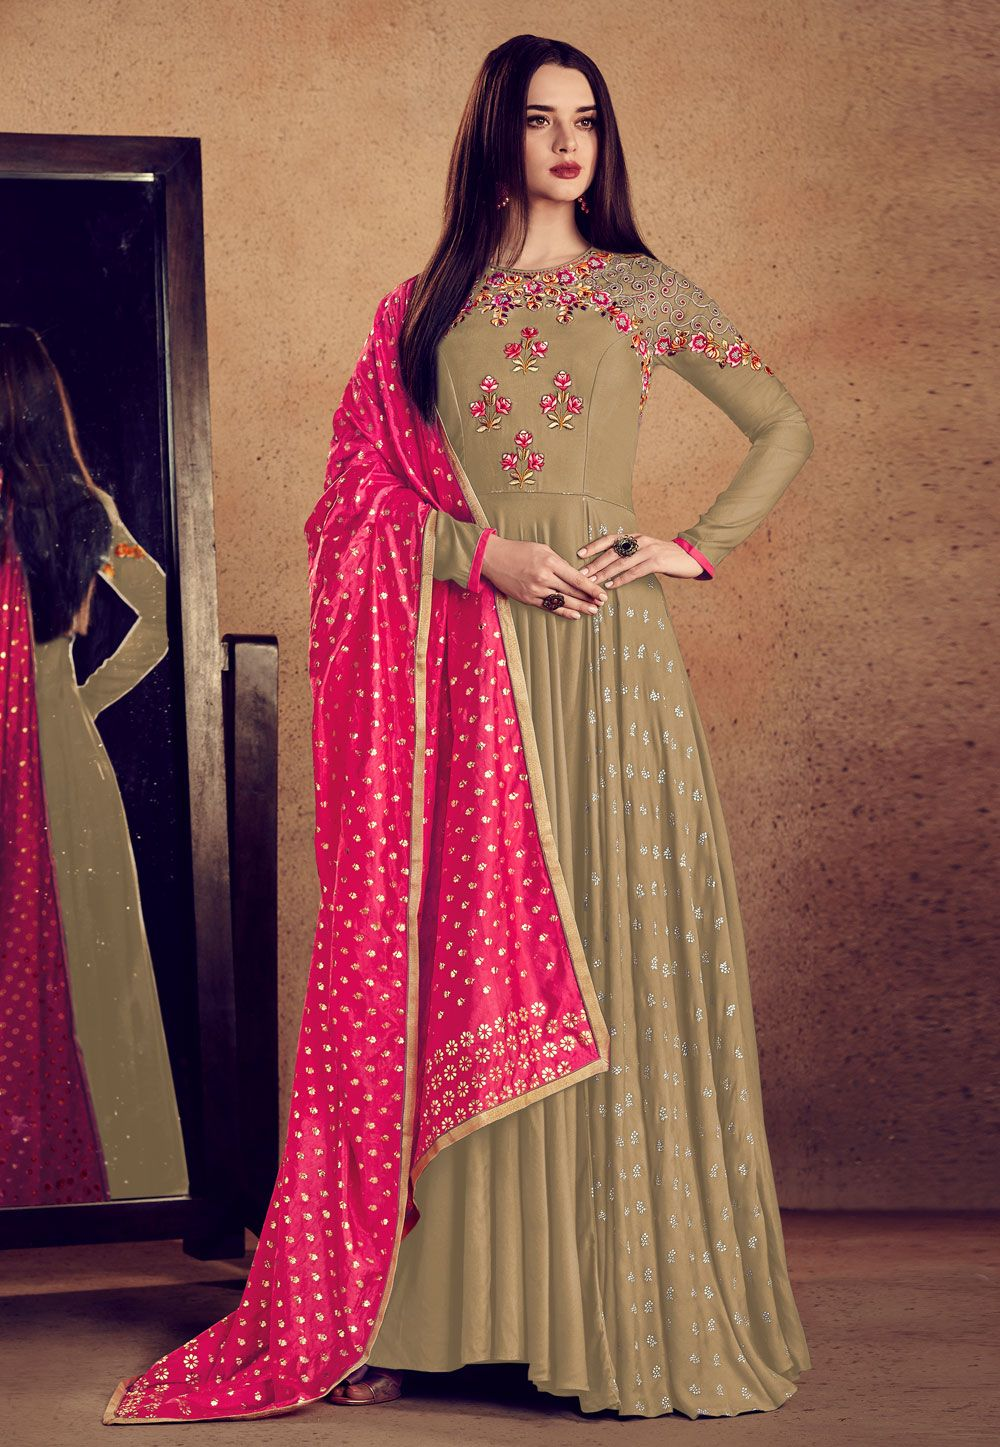 44cefd6123ba Buy Beige Rayon Readymade Ankle Length Anarkali Suit 163345 online at  lowest price from huge collection of salwar kameez at Indianclothstore.com.